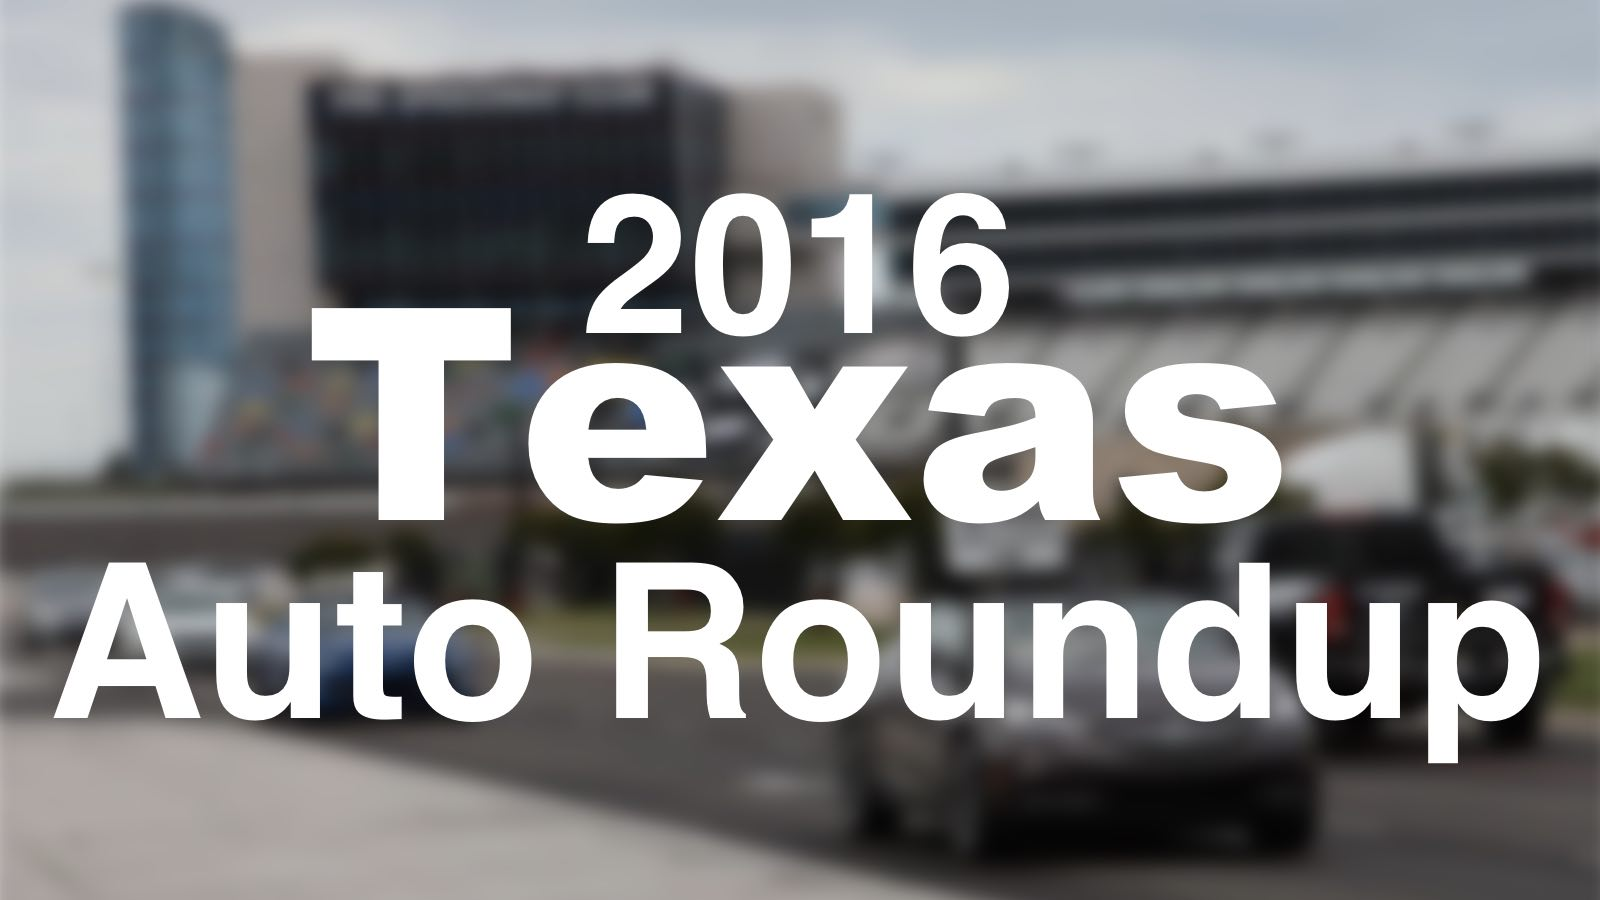 The 2016 Texas Auto Roupdup